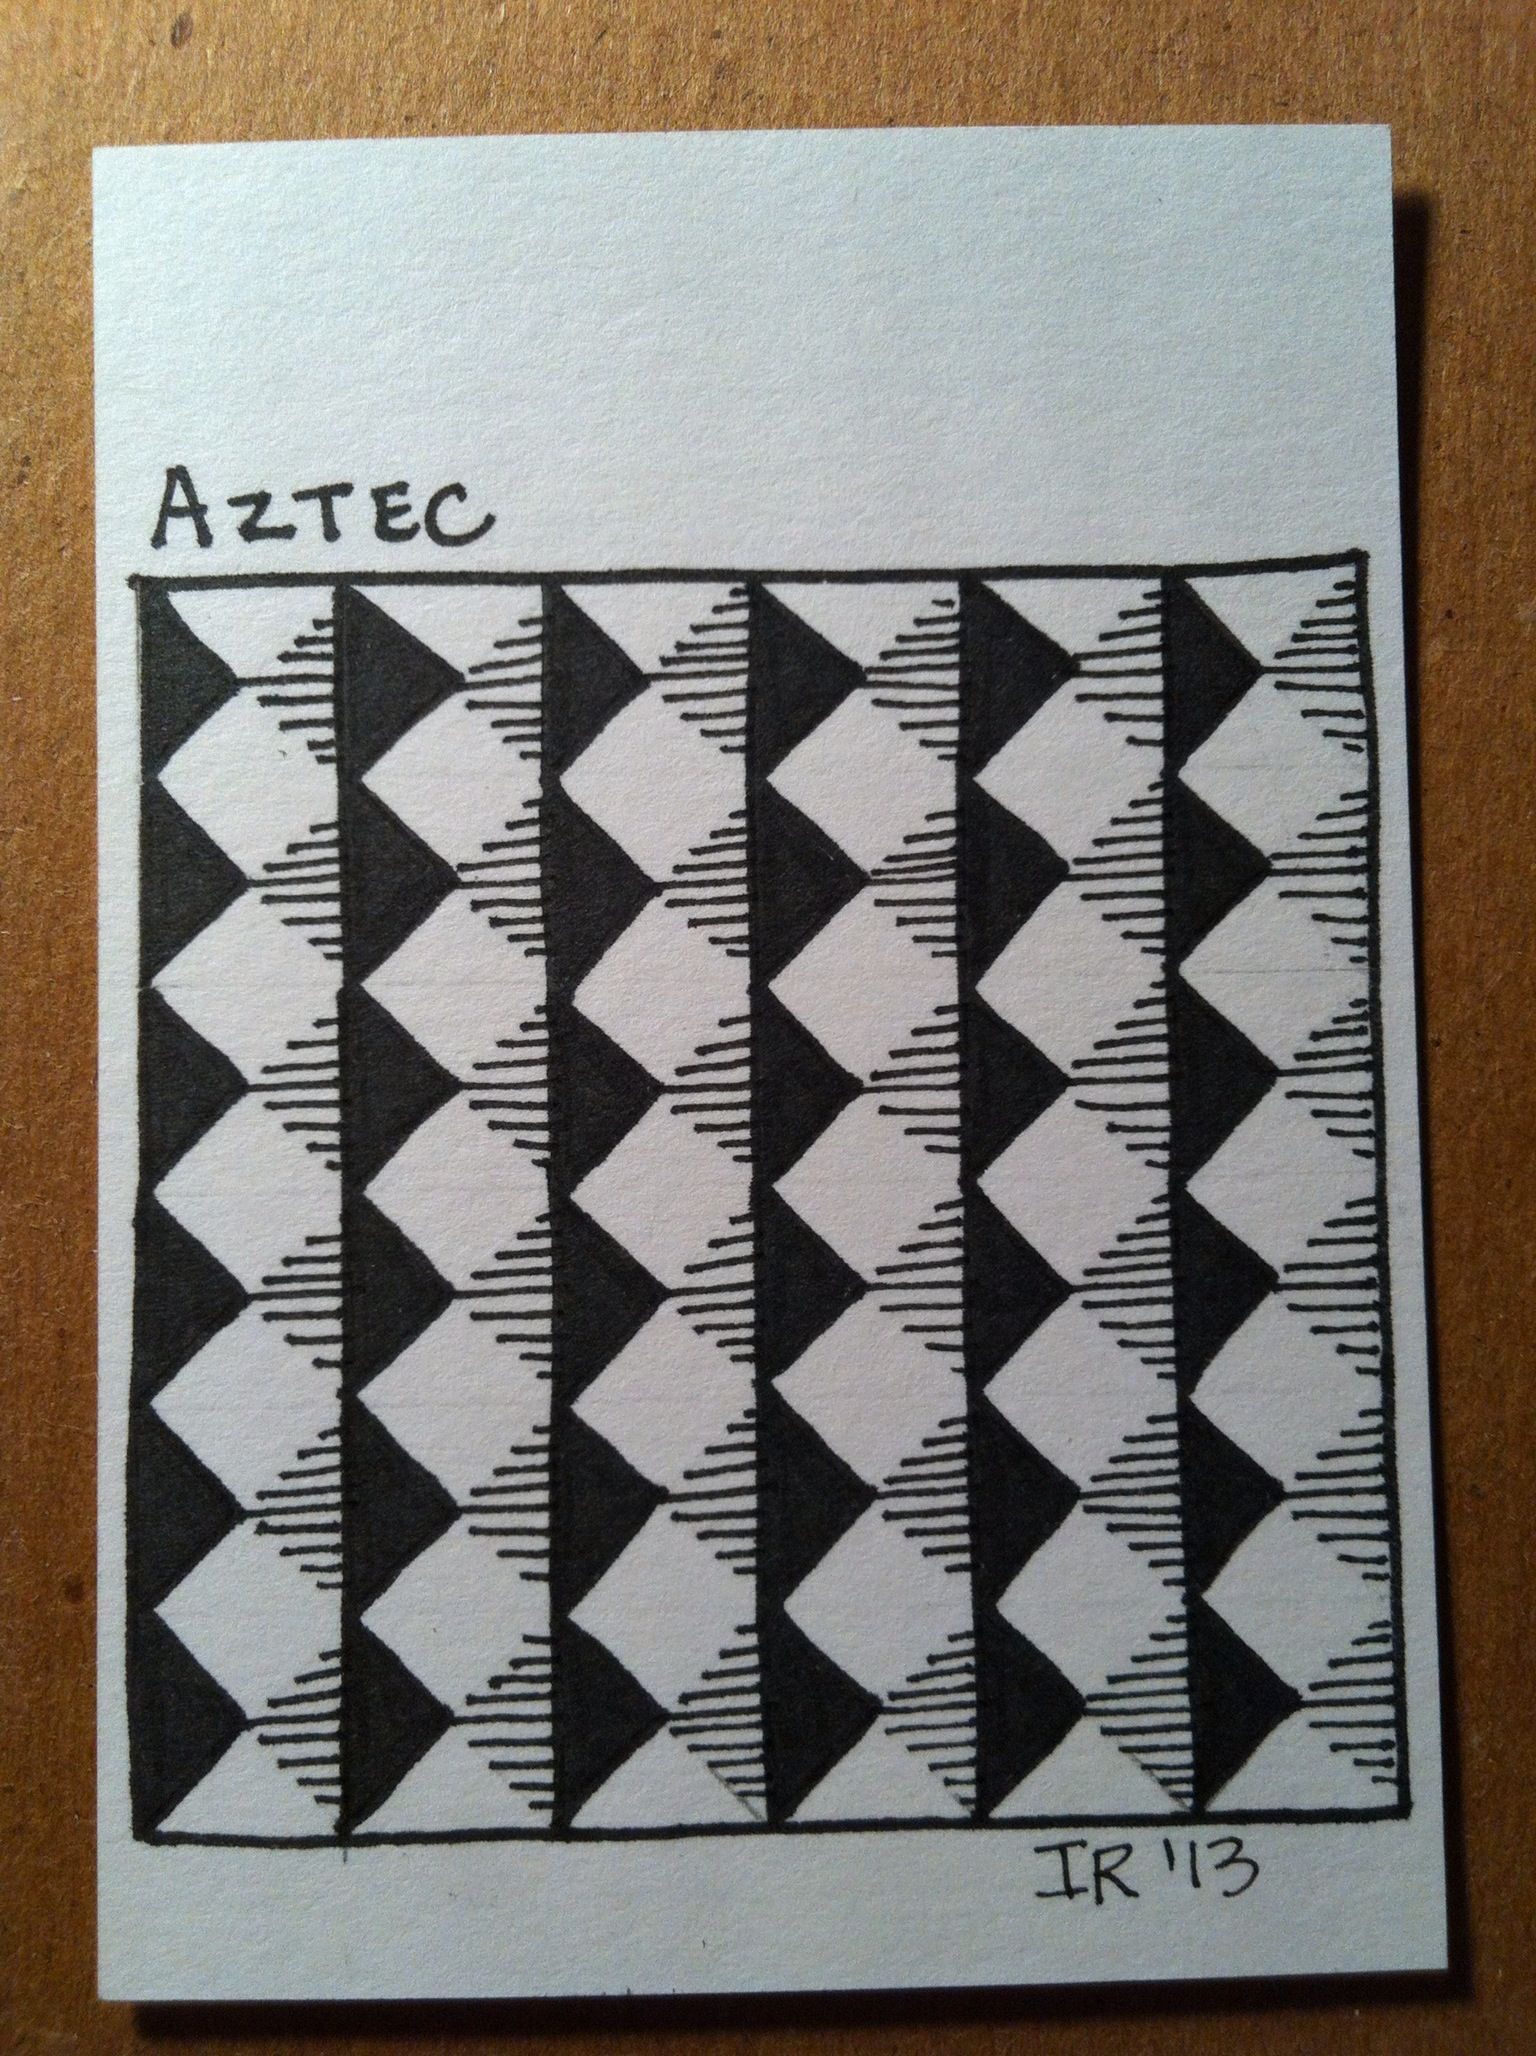 Aztec-my own design.